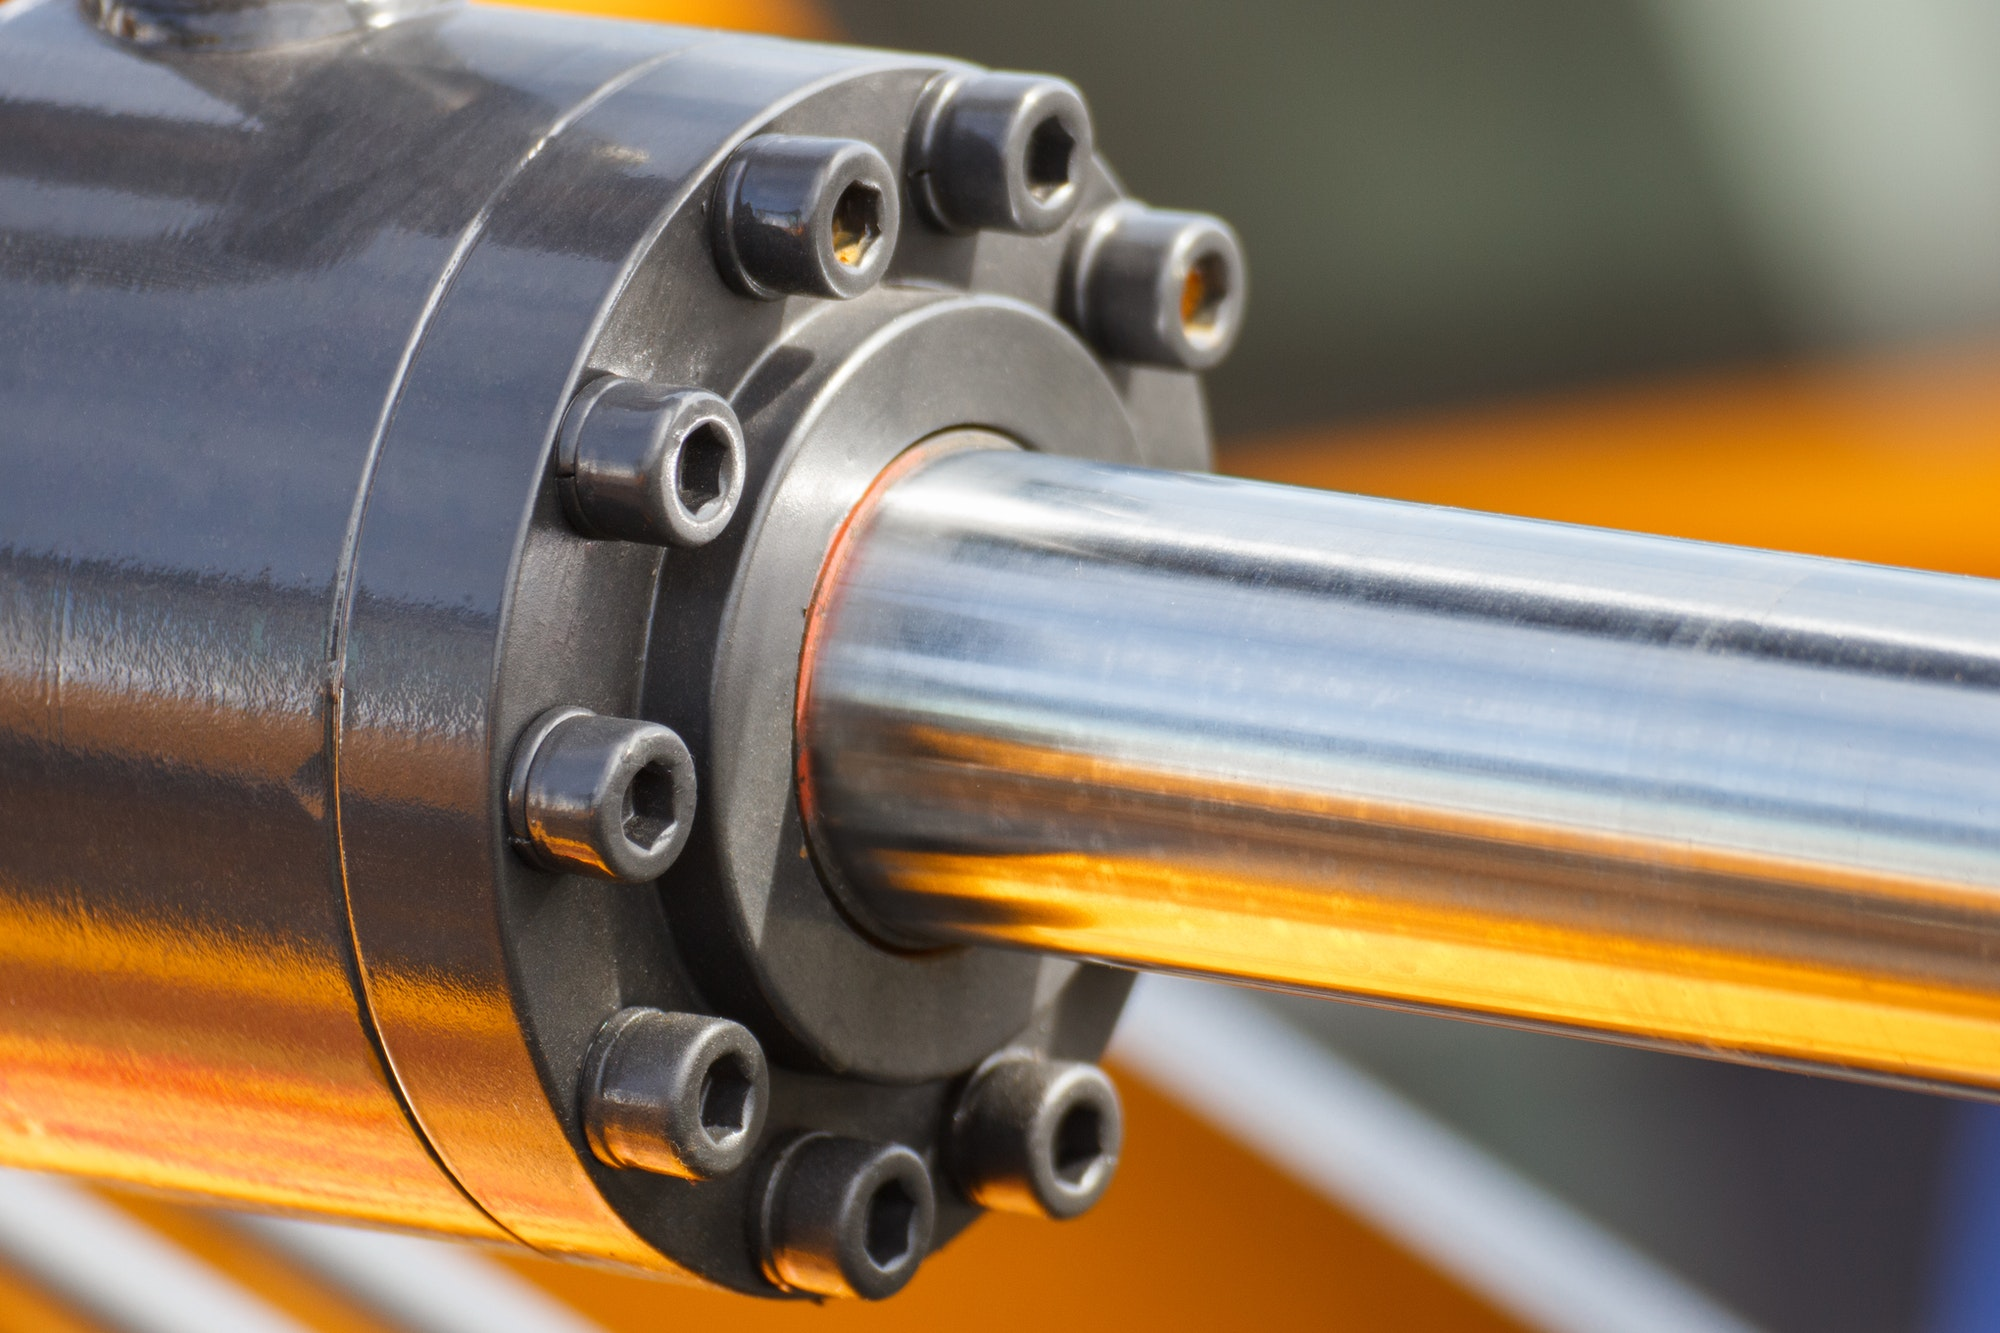 Piston or actuator of hydraulic and pneumatic machine. Technology and engineering